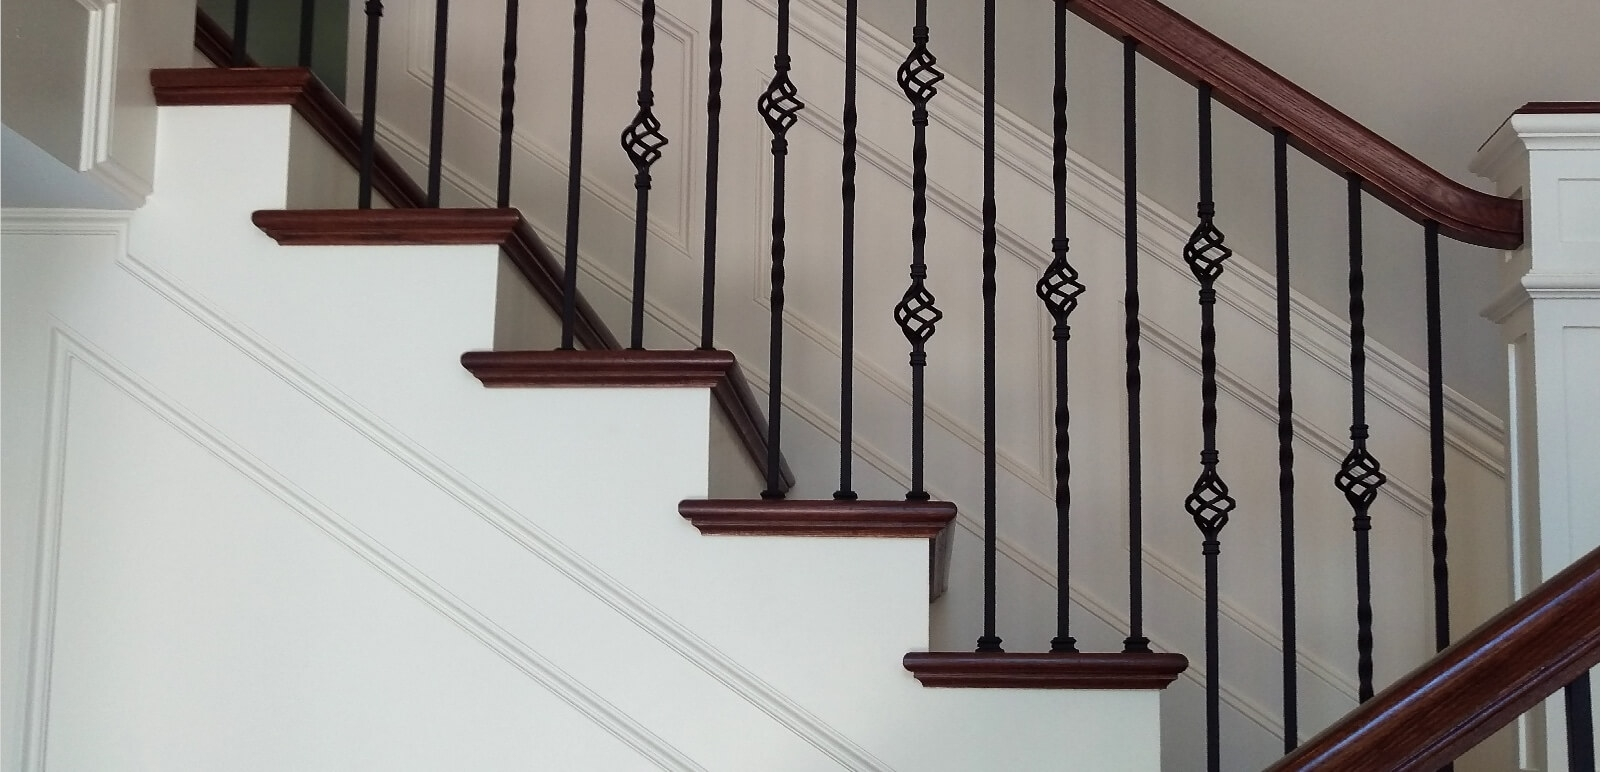 Houston Stair Parts Stair Remodel Iron Balusters Railing | Staircase Companies Near Me | Stair Parts | Floating Staircase | Spiral Staircase | Stair Railing | Stair Lift